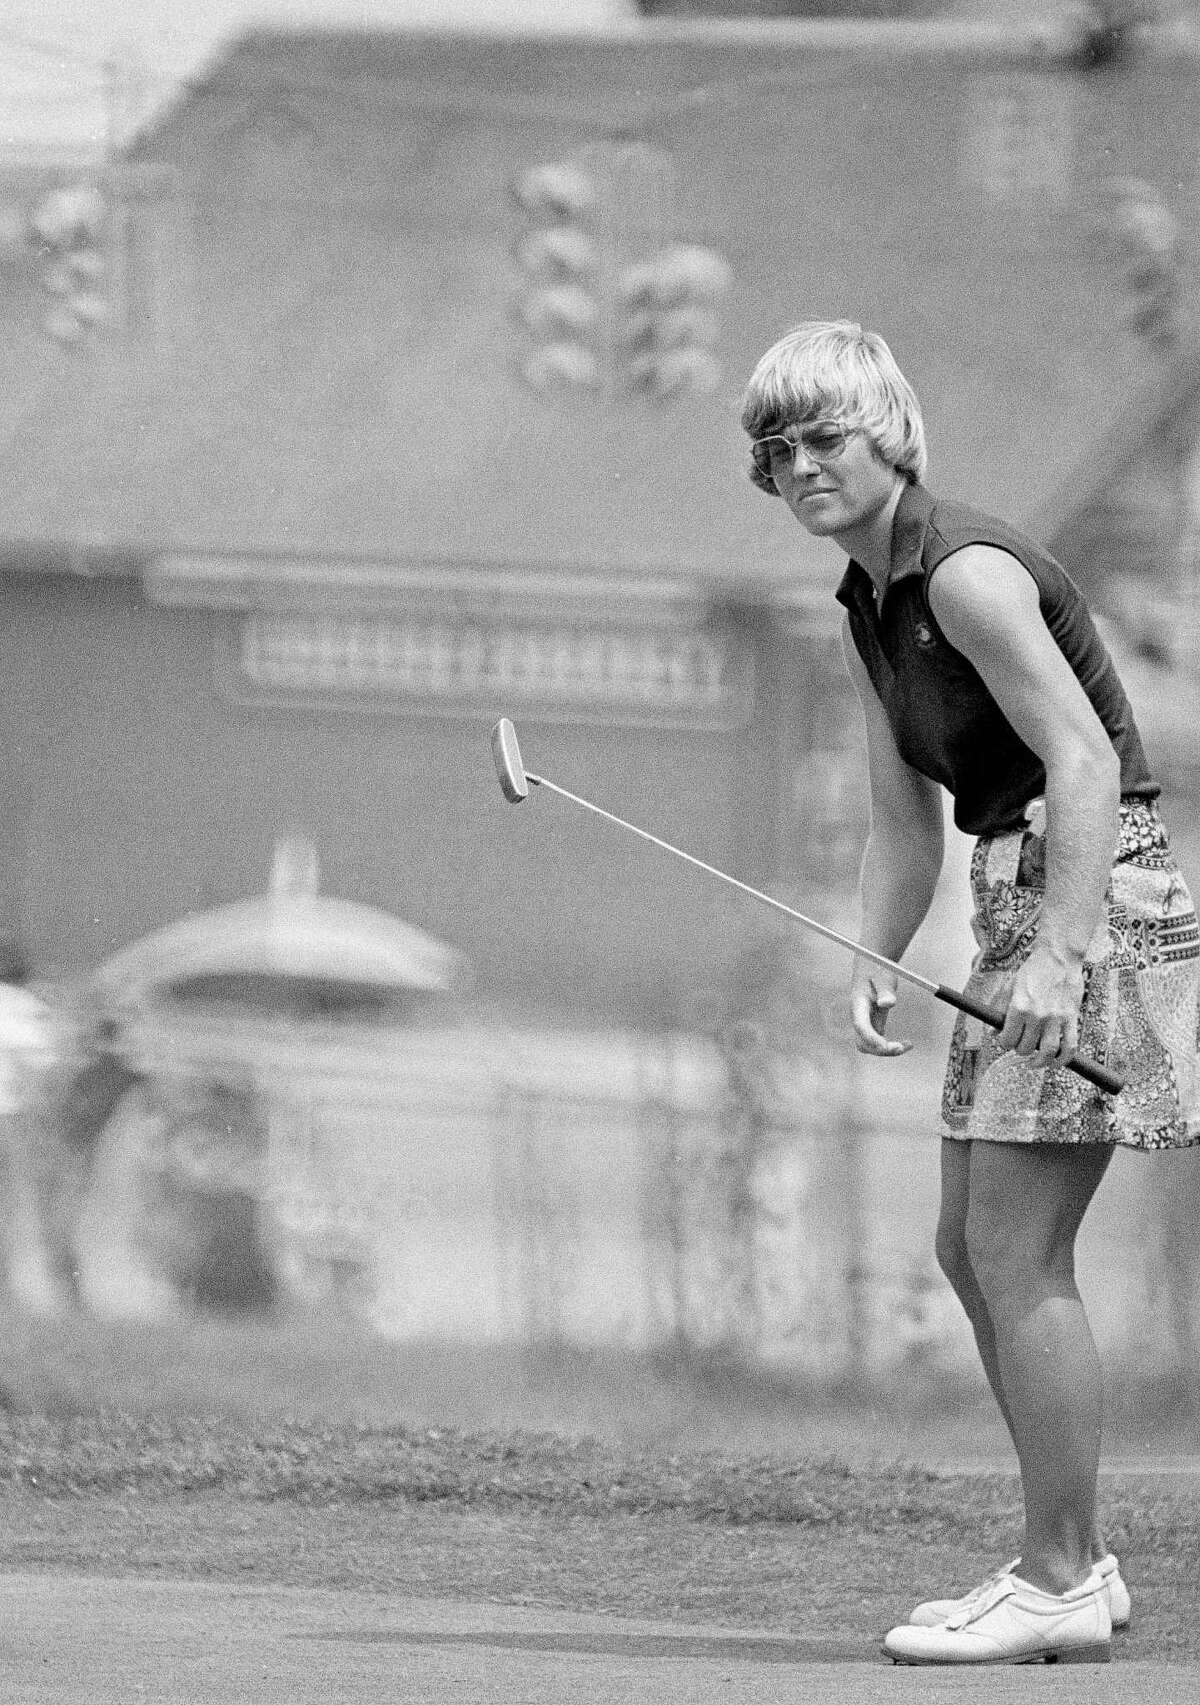 Jerilyn Britz watches a putt roll toward the hold on the 15th green at Brooklawn Country Club in Fairfield, Conn., during the first round of the U.S. Women's Open golf tourney, July 12, 1979. Britz and Deborah Massey finished their rounds with 1-under-par 70s to share the early first-round lead. (AP Photo/Bob Child)